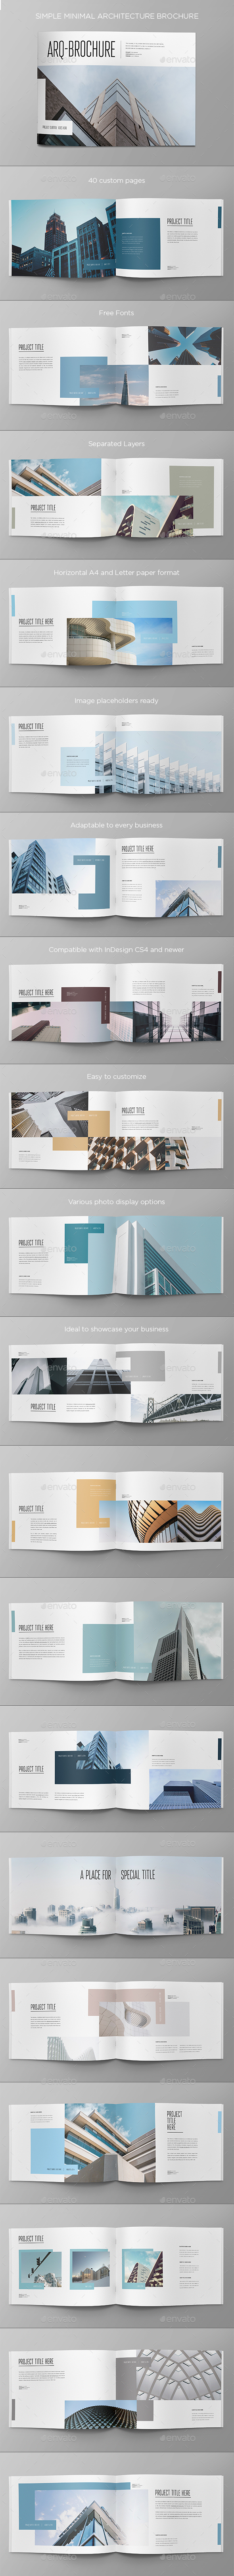 Simple Minimal Architecture Brochure - Brochures Print Templates